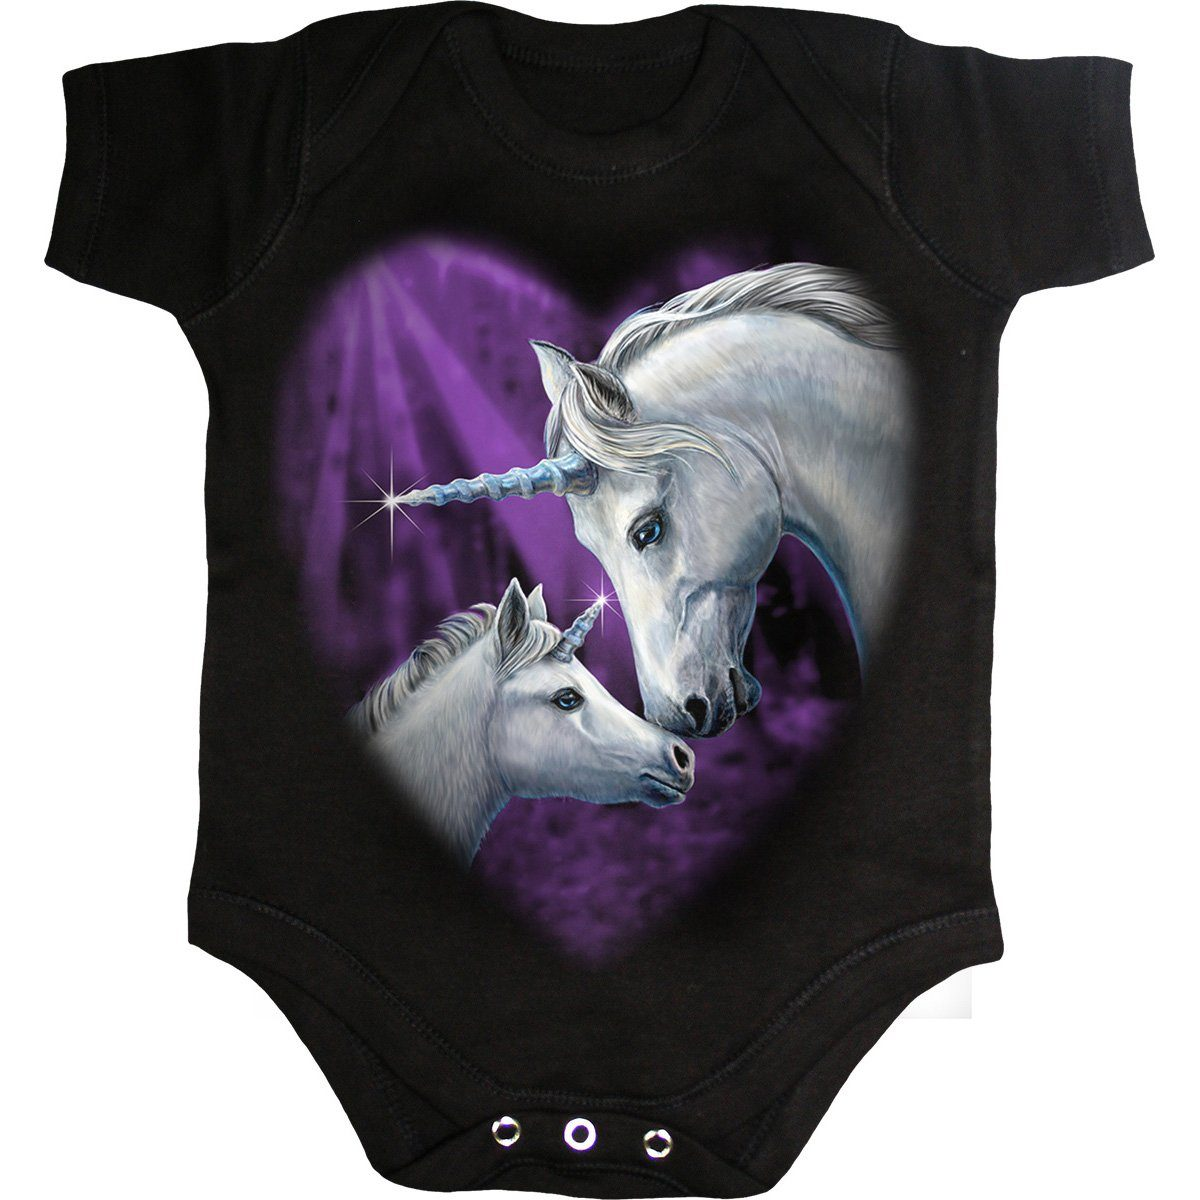 Magical Unicorn Baby Black Onesie - Rebels Depot